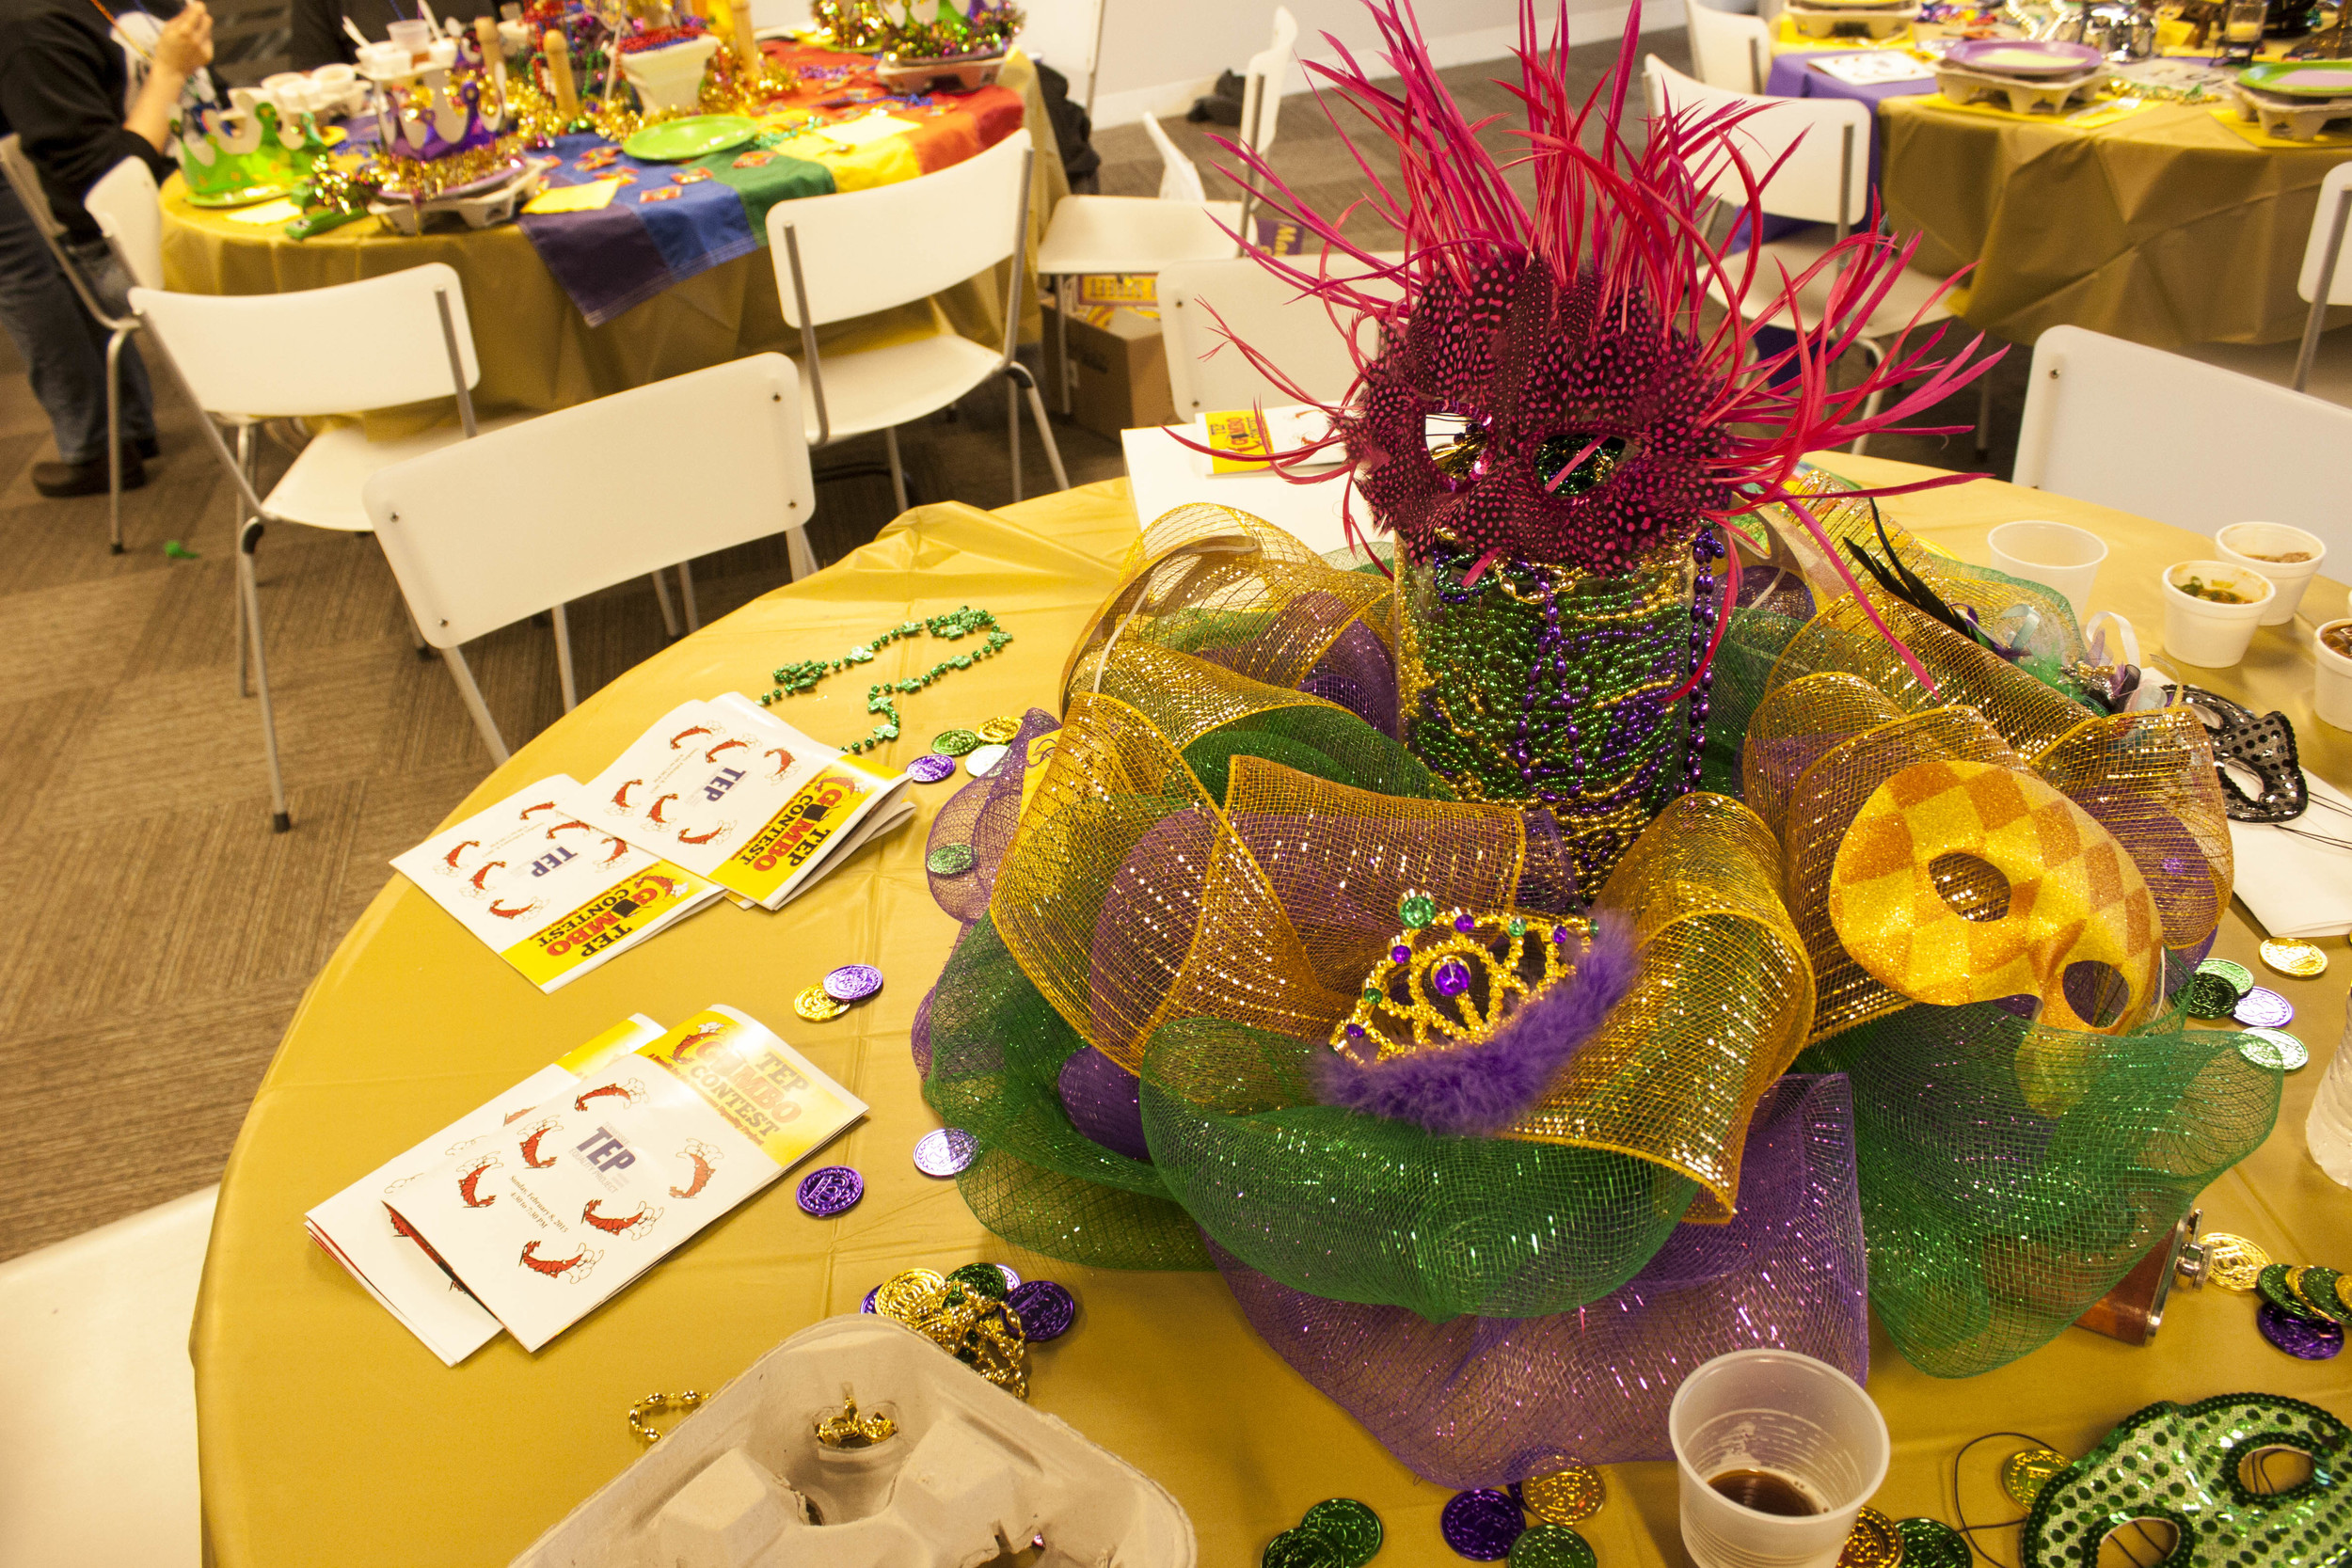 Tennessee Equality Project 5th Annual Gumbo Contest (February 8, 2015)